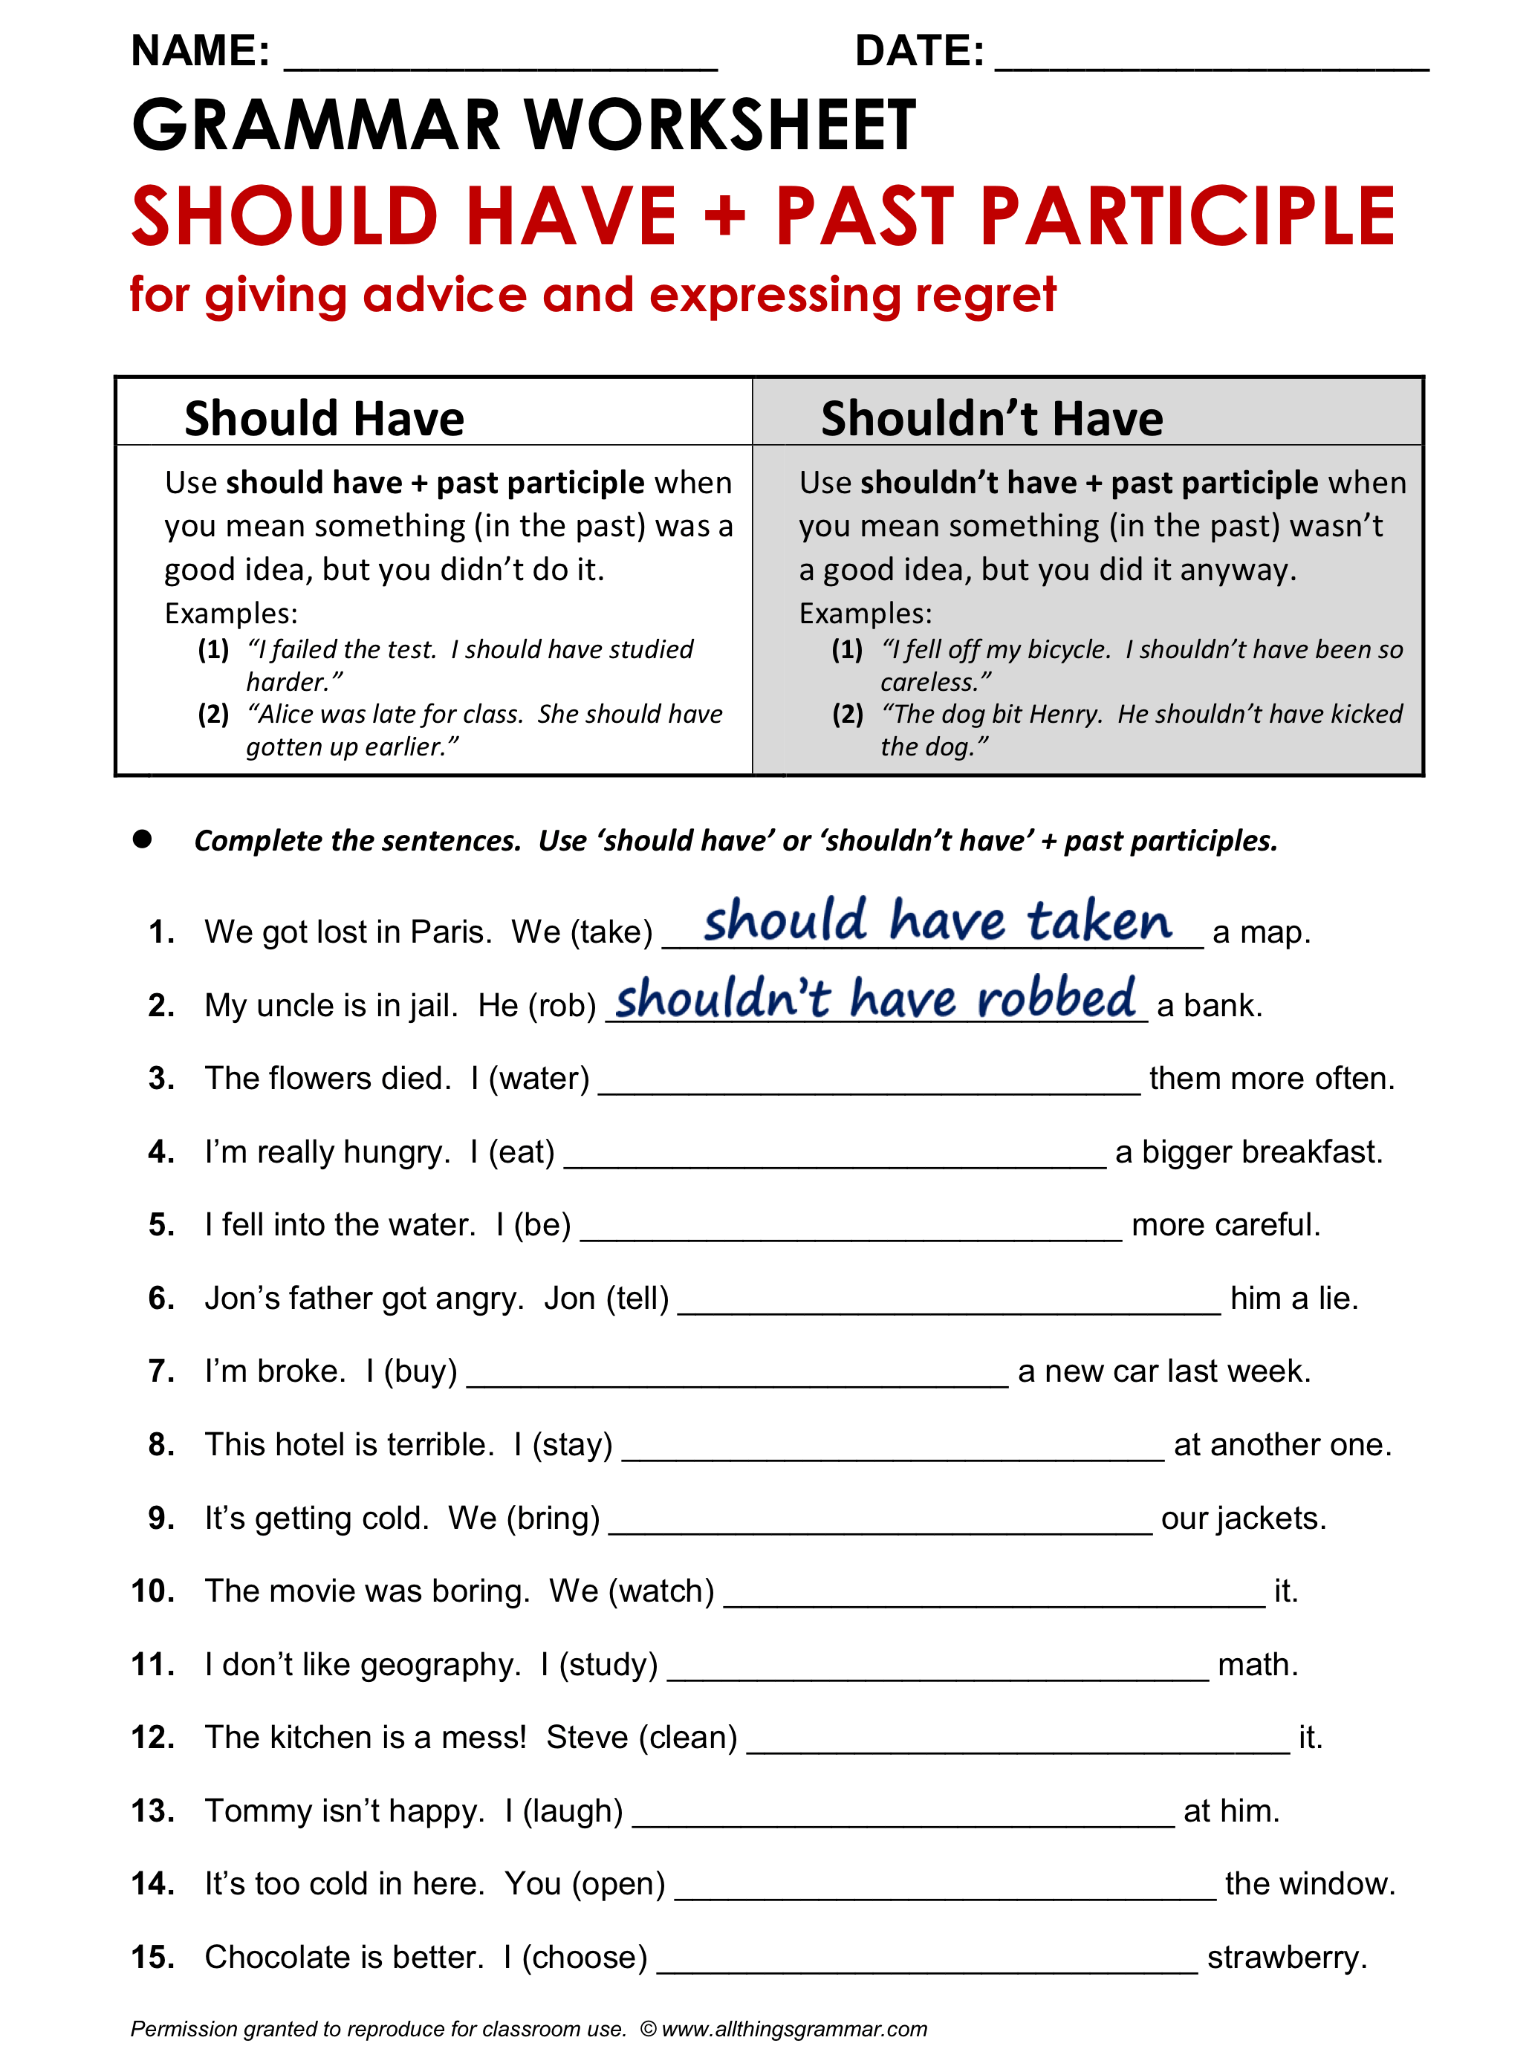 English Grammar Worksheet Should Have Past Participle 1 2 Lthingsgrammar